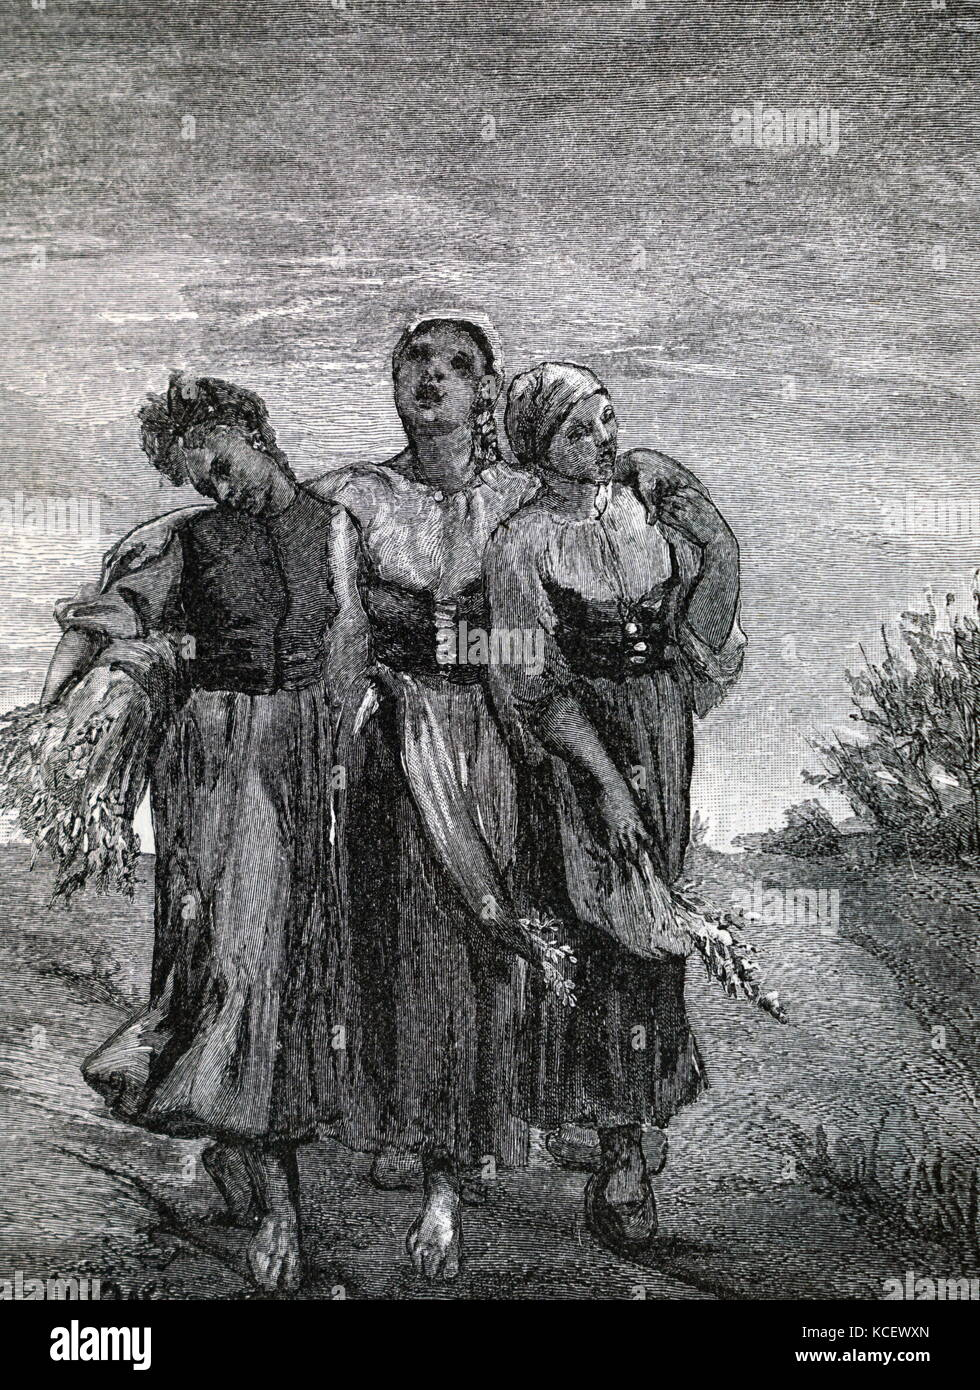 Print of the painting titled 'The Harvesters' by Jean-François Millet (1814-1875) a French painter - Stock Image